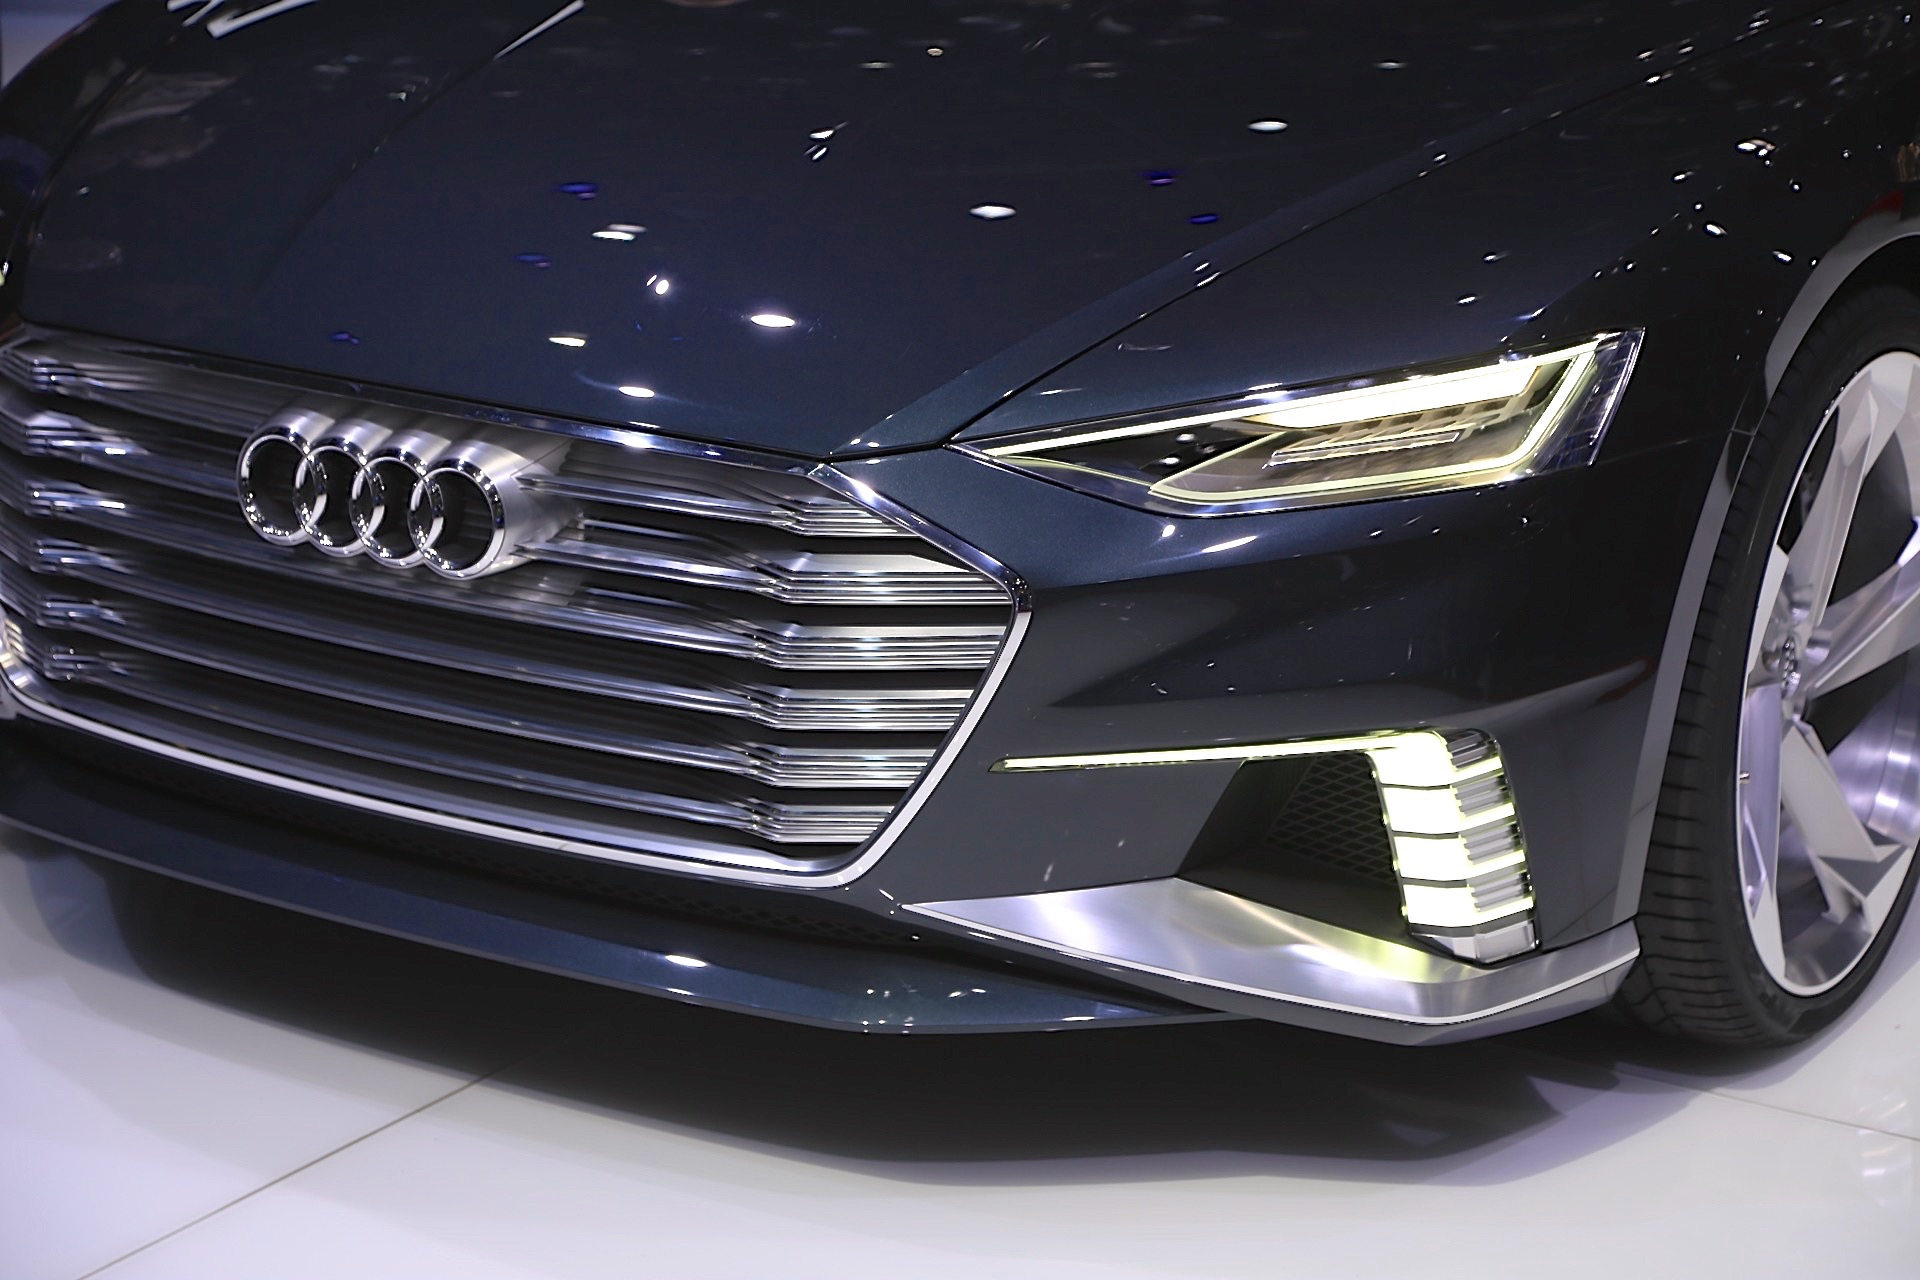 Audi A9 e tron electric car Tesla Model S rival to launch by 2020